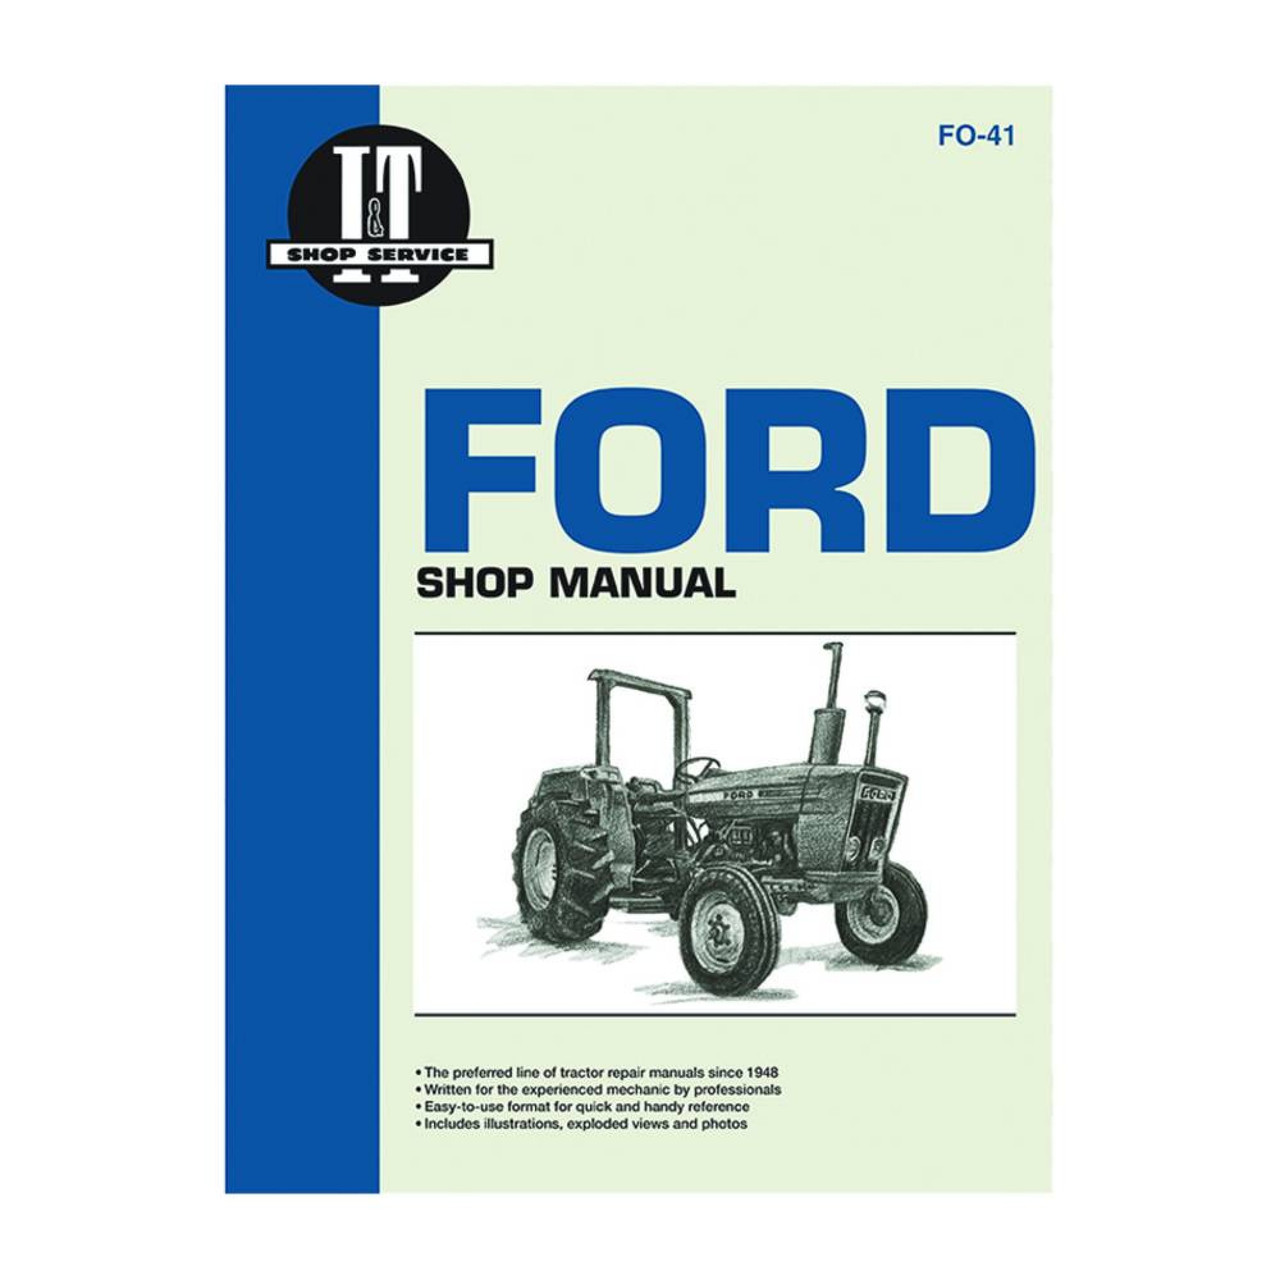 New Holland Ford Wiring Diagrams on ford 4600 solenoid, ford starter relay diagram, ford tractor electrical diagram, ford 1100 tractor parts diagram, ford 4600 tractor, ford 2000 tractor parts diagram, ford 4000 wiring-diagram 12v, massey ferguson 135 wiring diagram, ford 4000 tractor lift diagram, ford 4600 parts, ford 4000 diesel wiring-diagram, ford 4600 headlights, john deere 4600 wiring diagram, ford 4600 steering, ford 601 wiring-diagram,